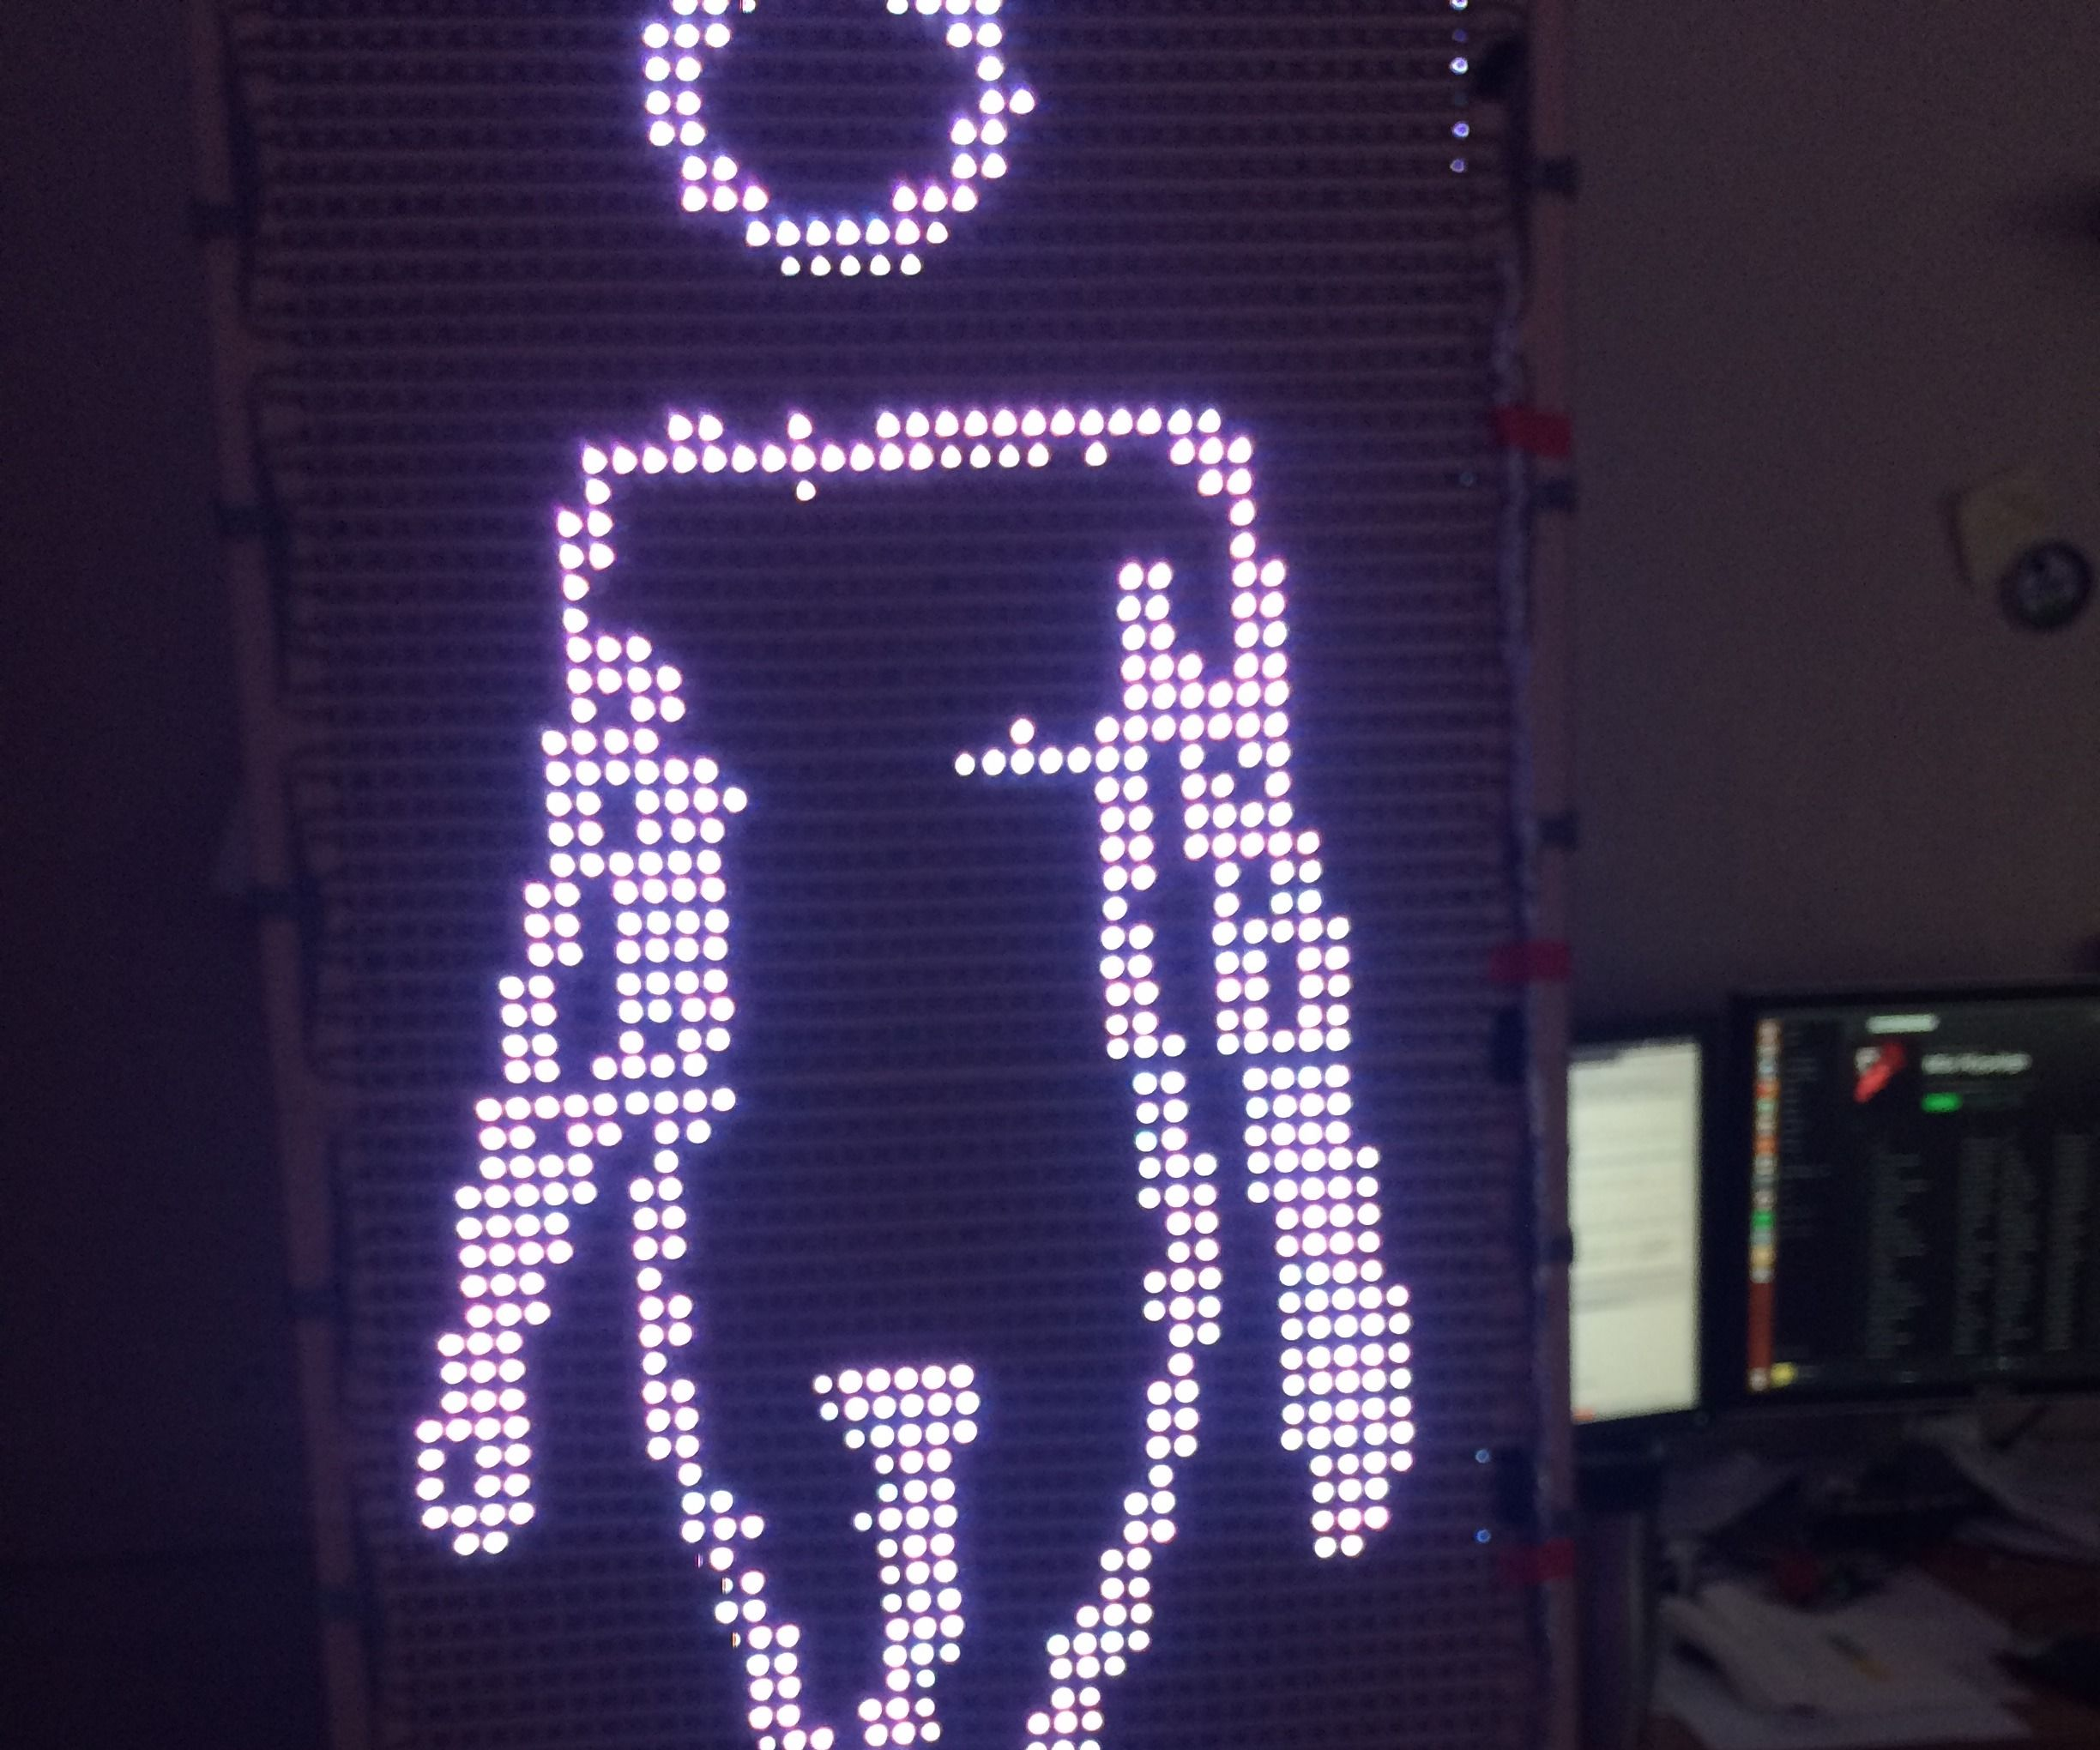 4000 Pixel Animated LED Mural [Cheap and Simple*]